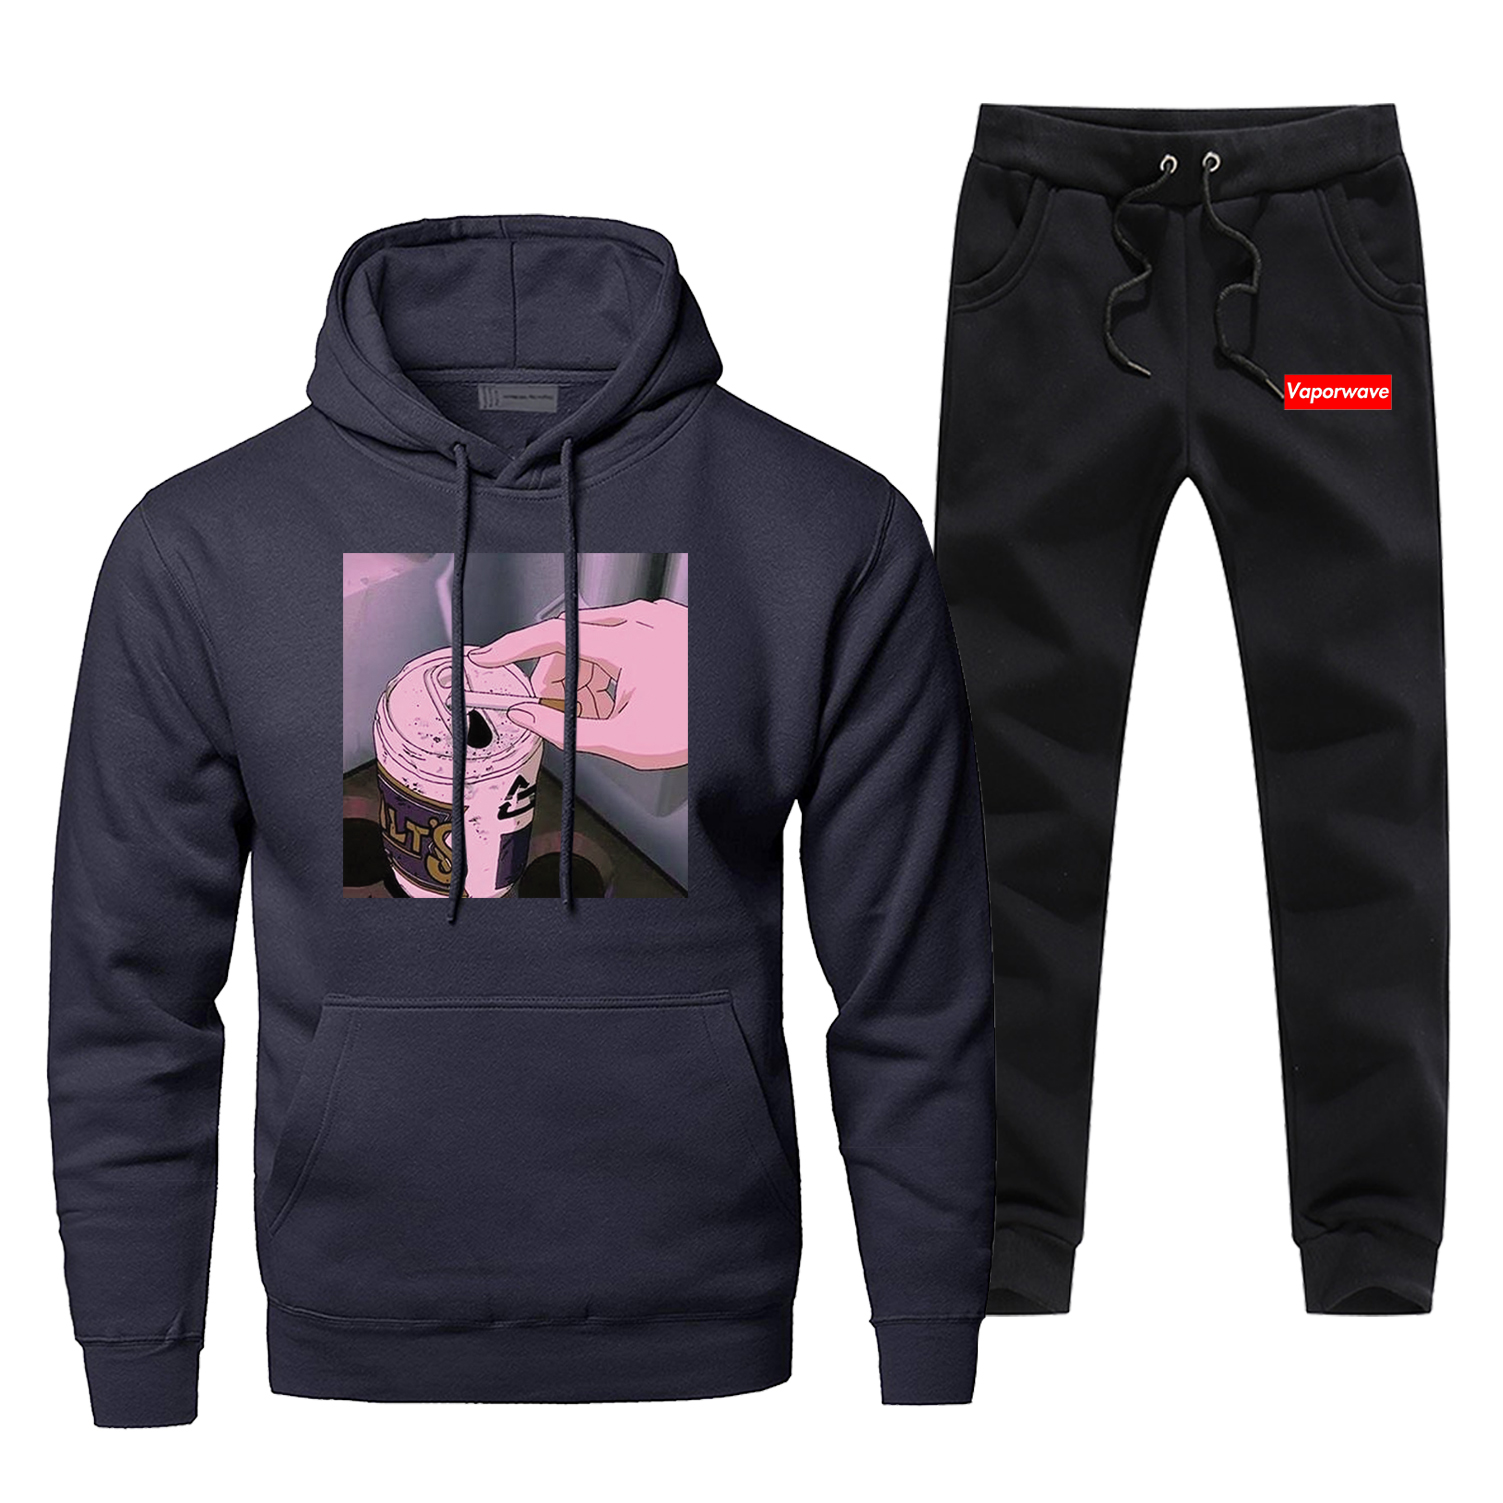 Retro Japanese Anime Vaporwave Mens Sweatshirts Harajuku Hoodies+pants Sets Men Funny  Fleece Streetwear Sportswear Sweatpants